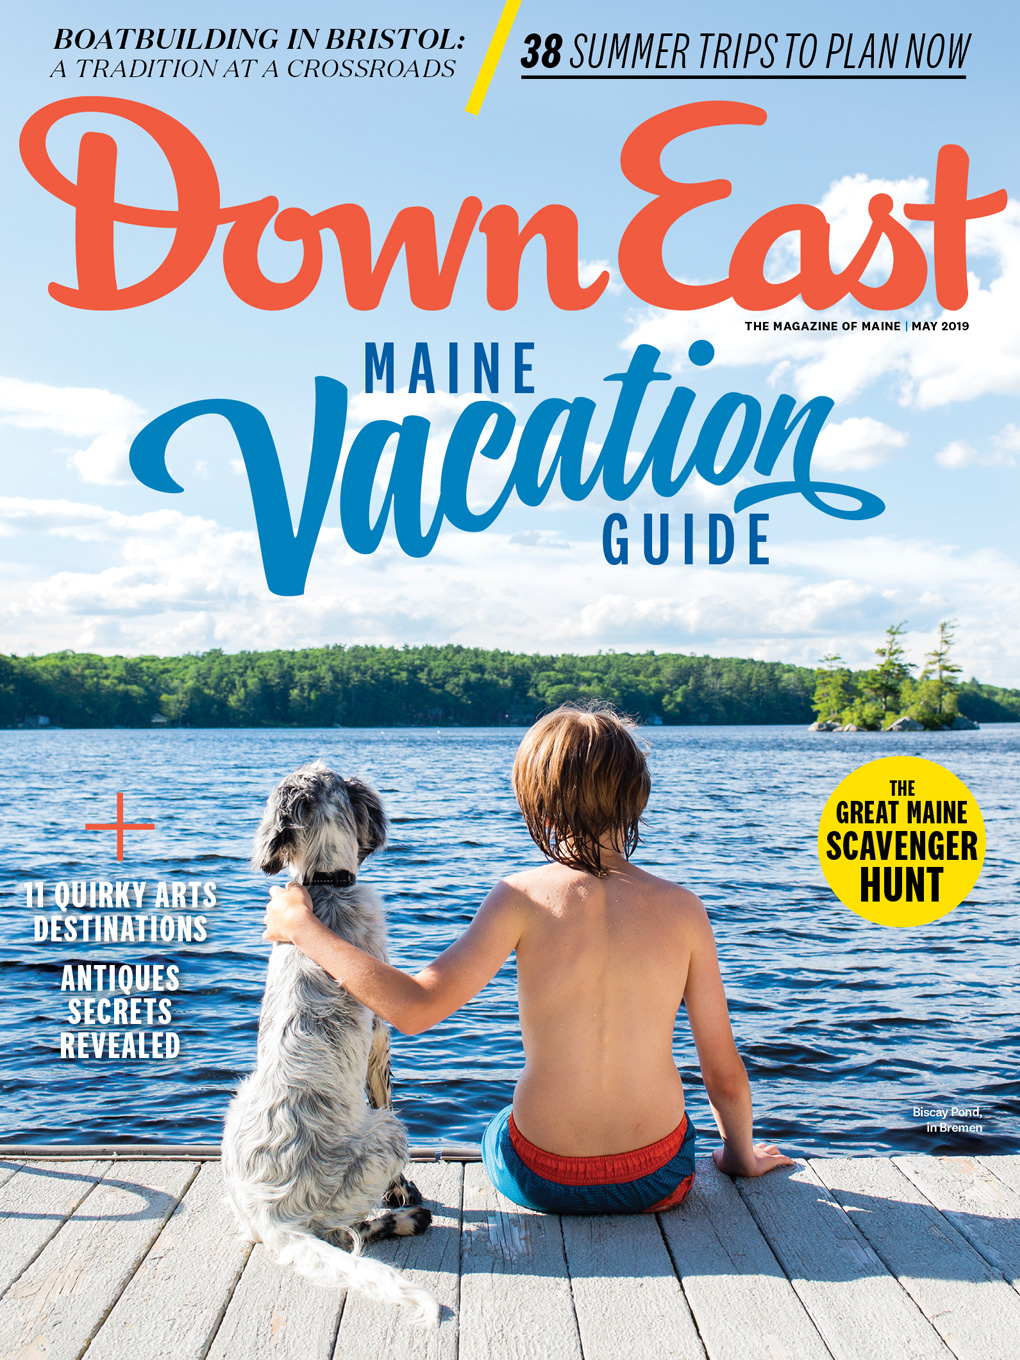 Down East magazine, May 2019